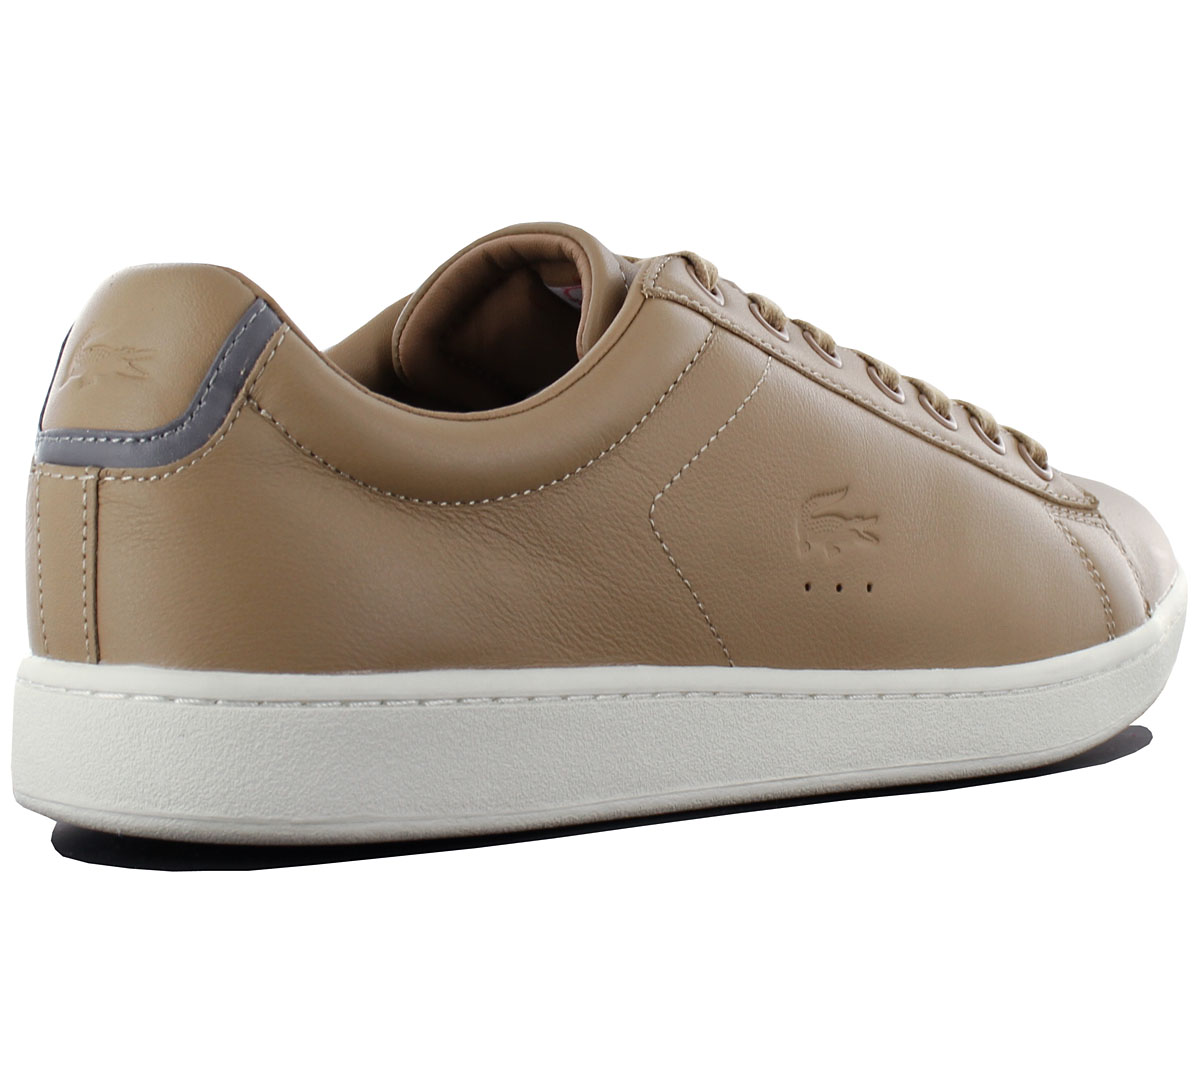 523afa4d0e5ba7 Lacoste Carnaby Evo 416 Cam Men s Sneakers Shoes Leather 318 417 ...